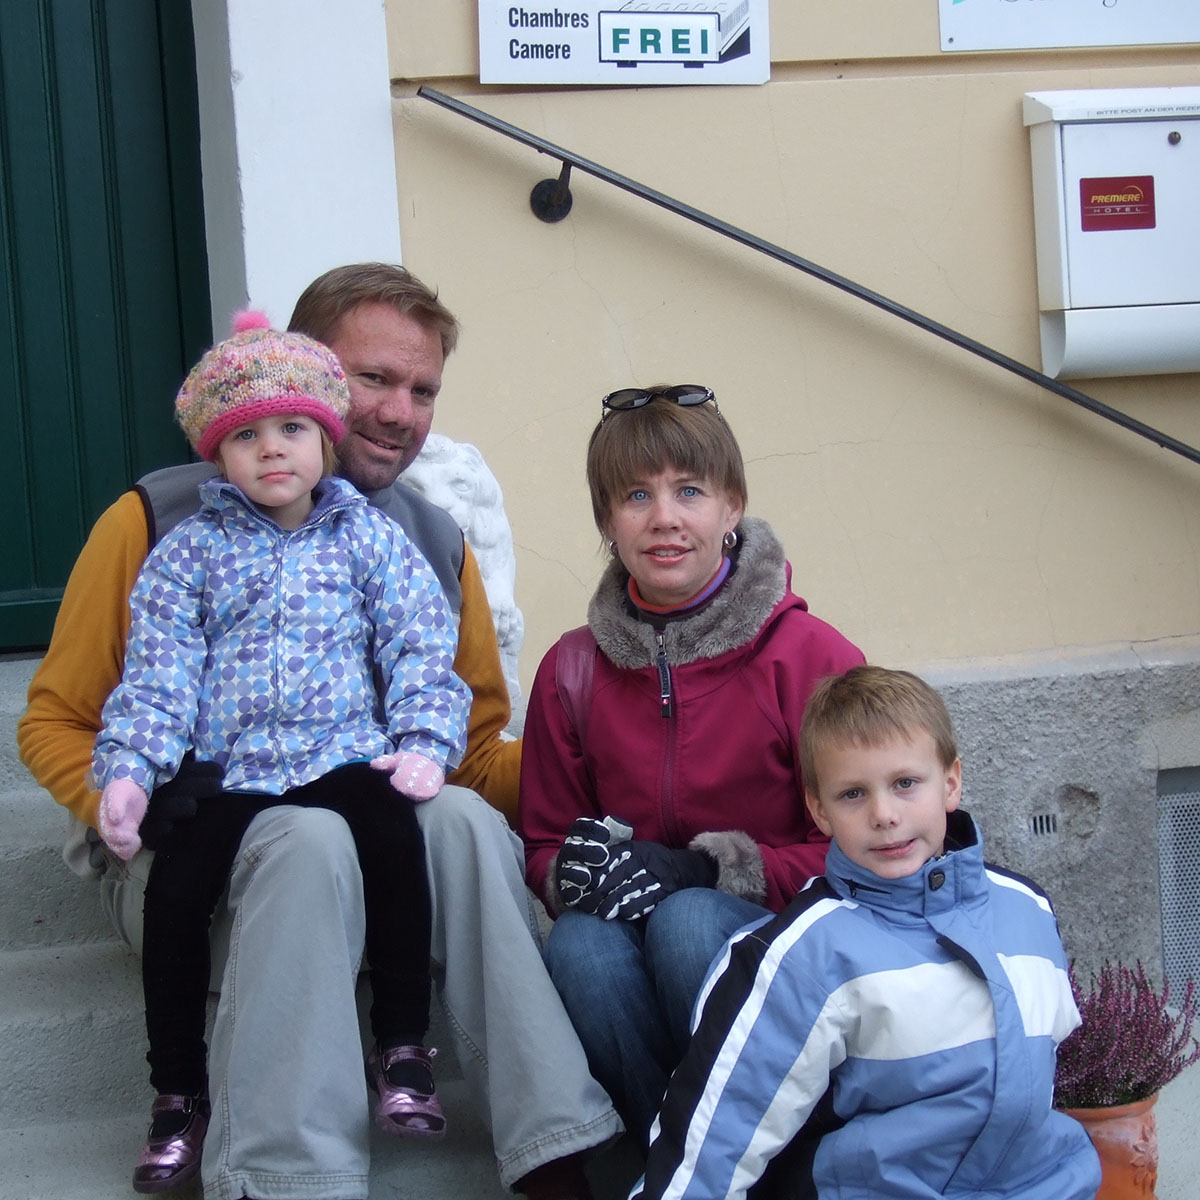 Trent with his family on a trip to Germany in 2008.